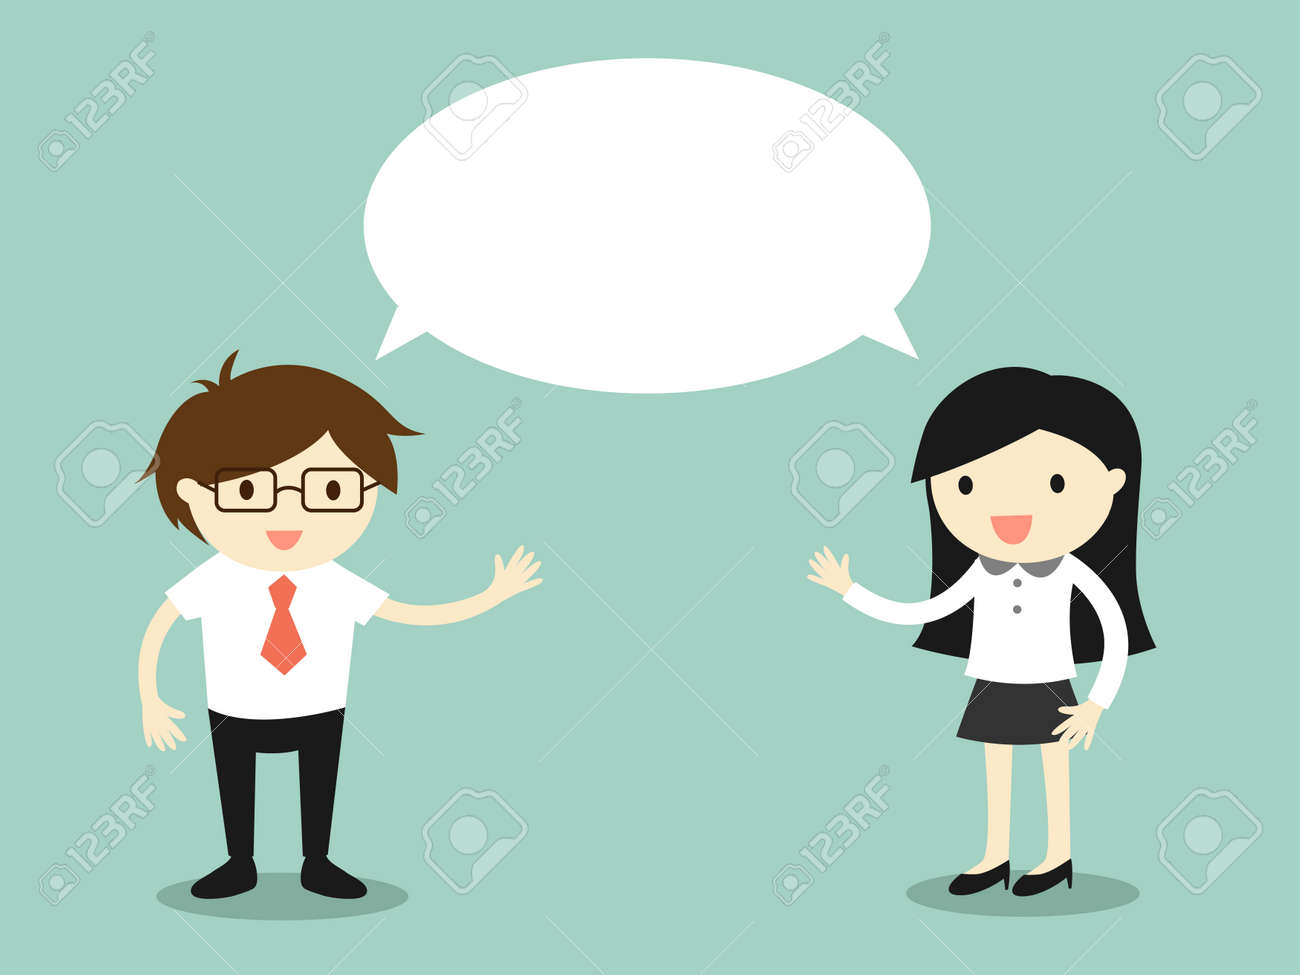 Business concept, businessman and business woman talking the same thing or same ideaconcept. Vector illustration. - 51249227